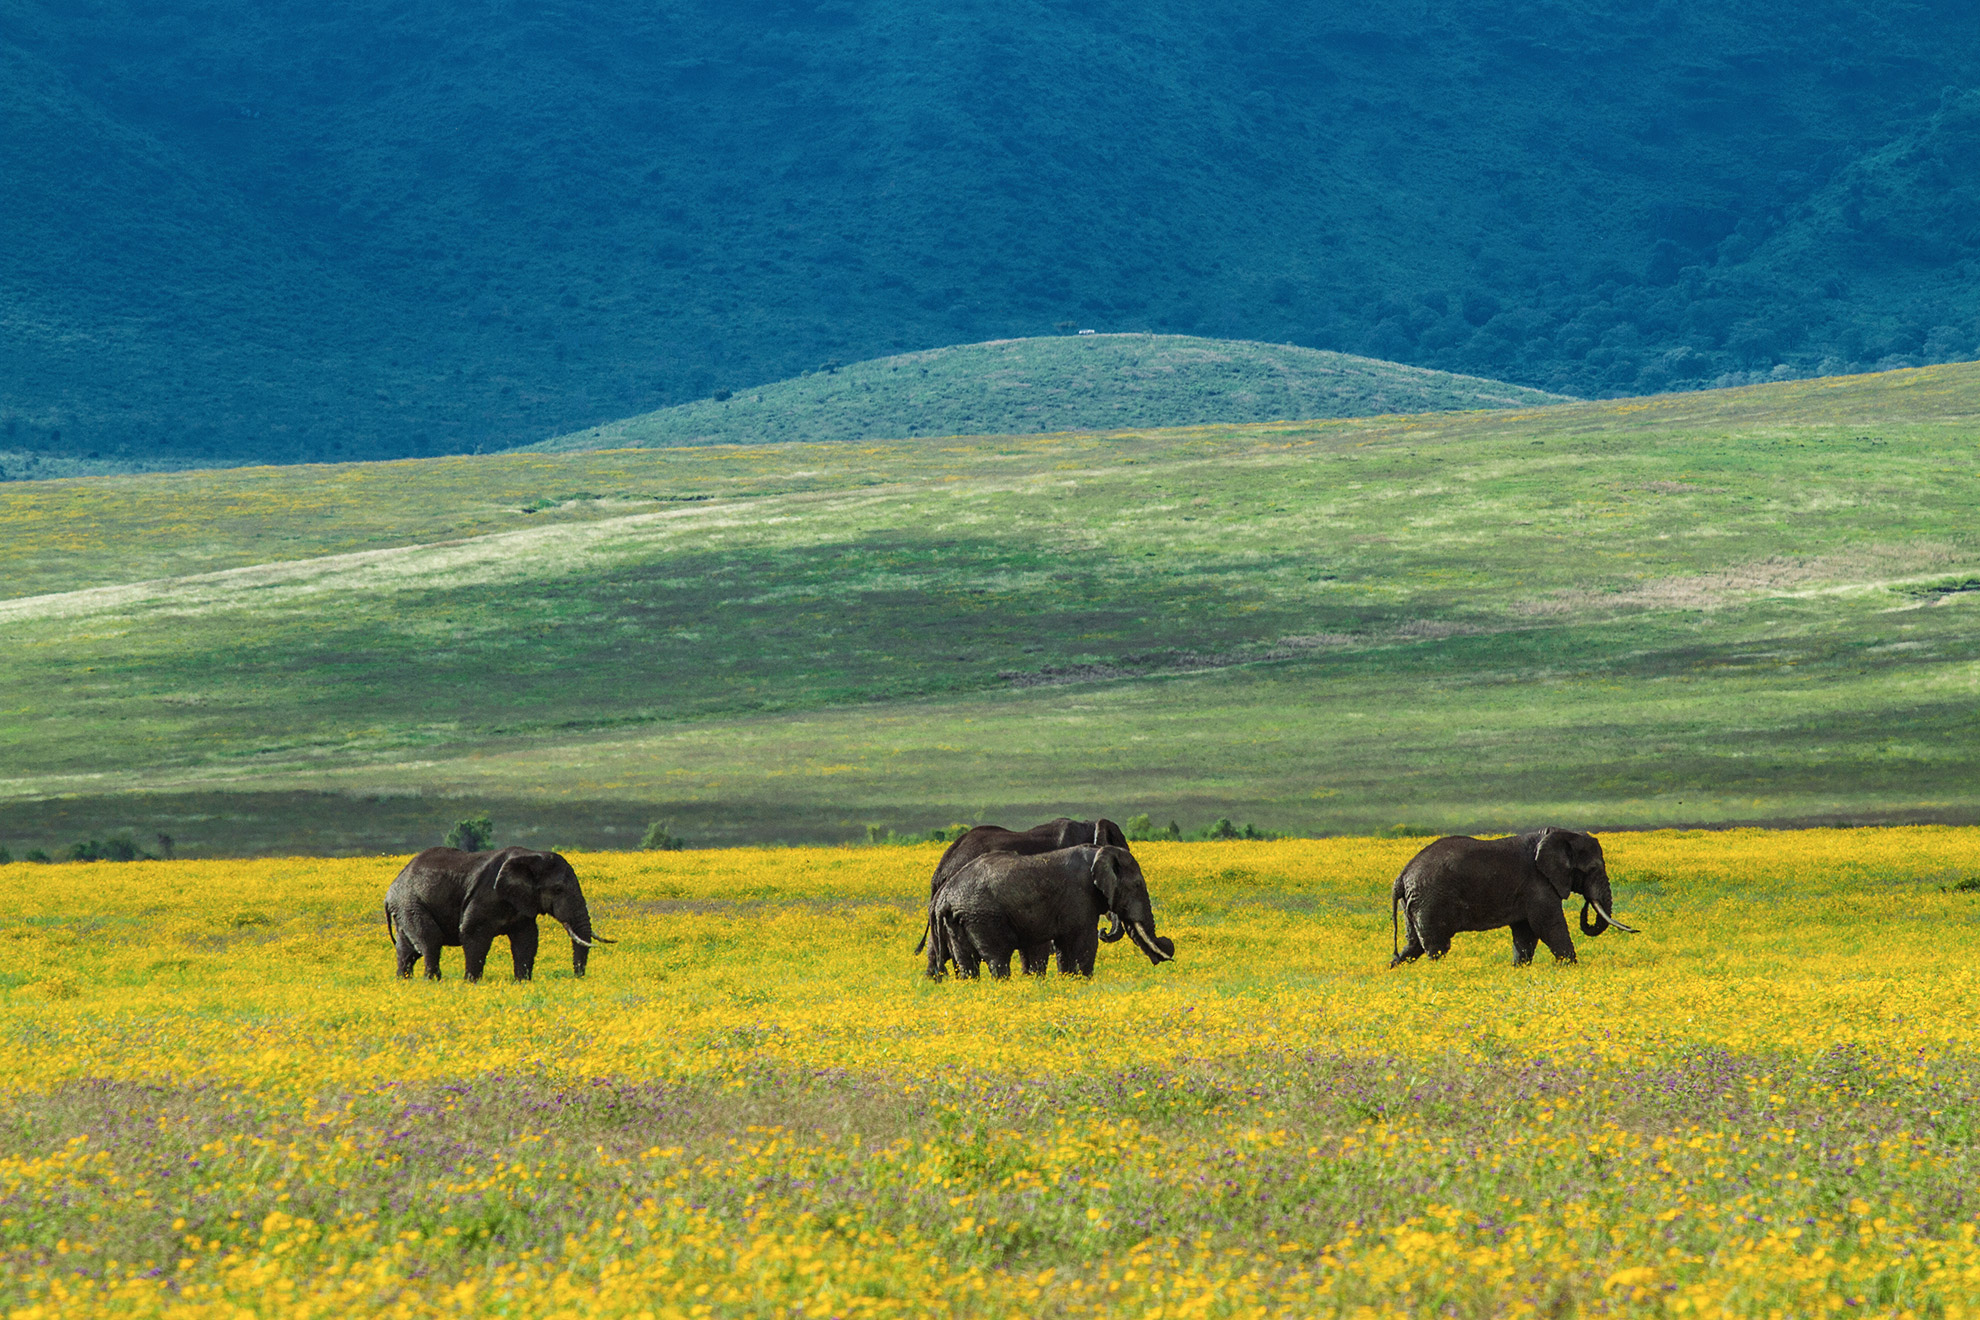 Several elephants roaming an open field